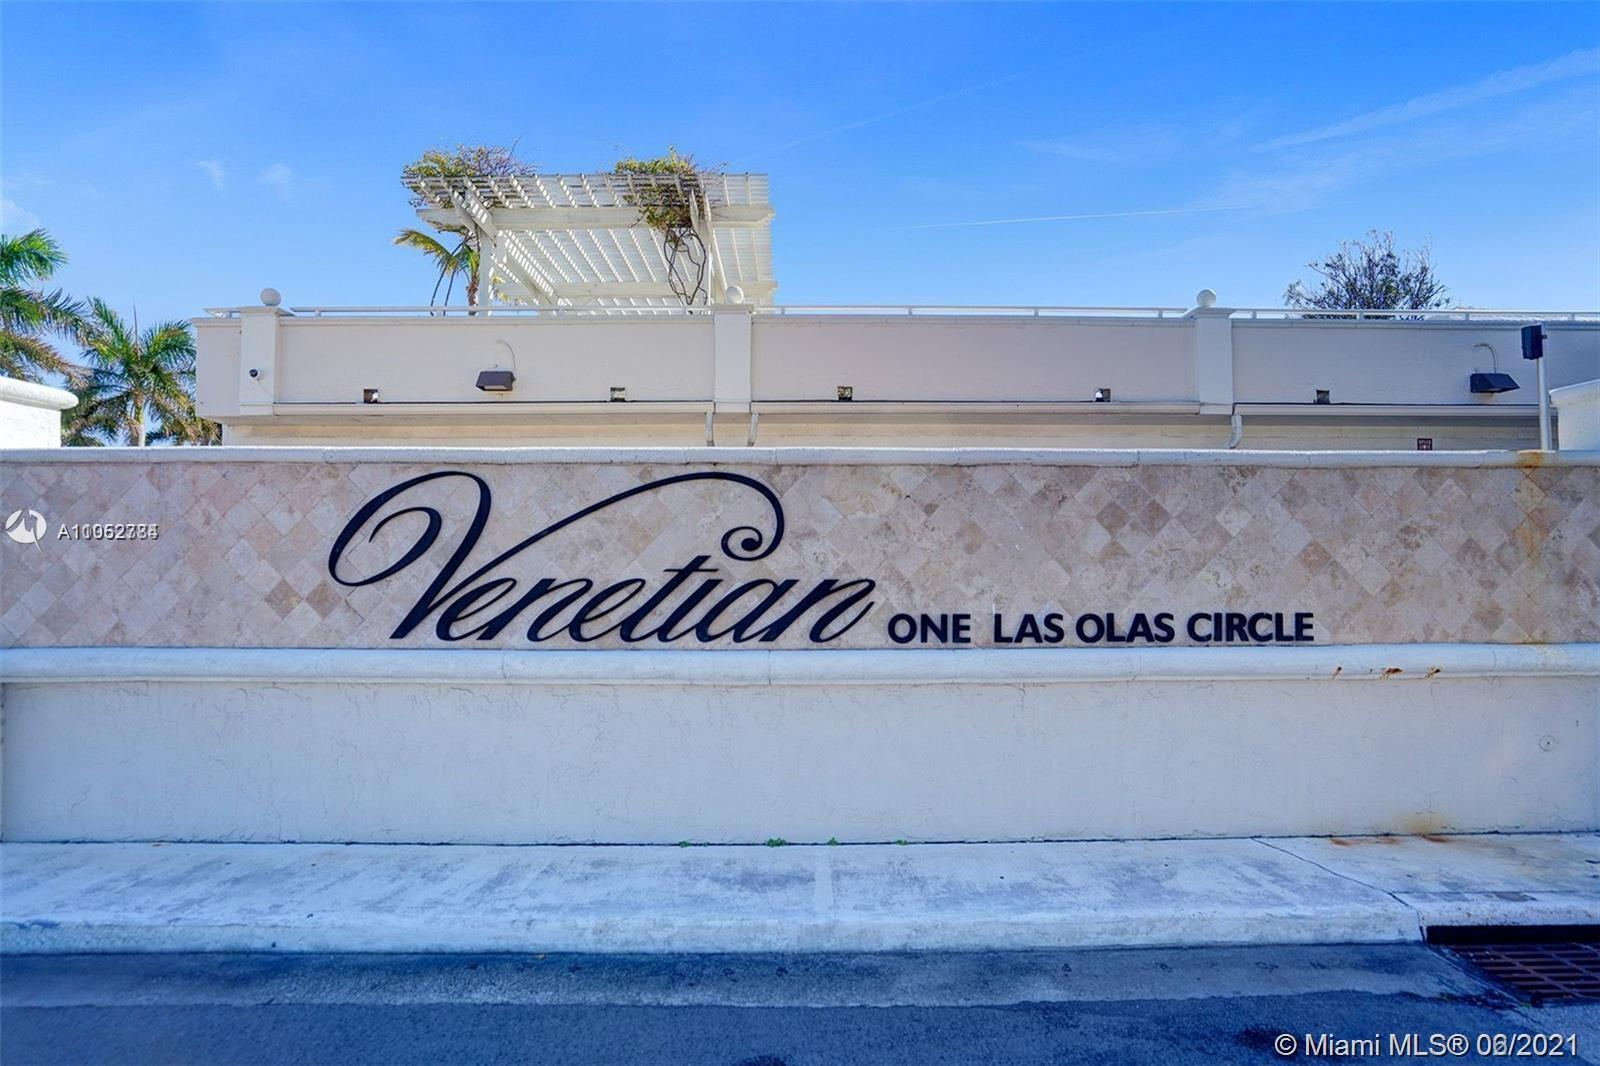 Located in the exclusive Las Olas area of Ft. Lauderdale. You are in the heart of FT. Lauderdale/5 m